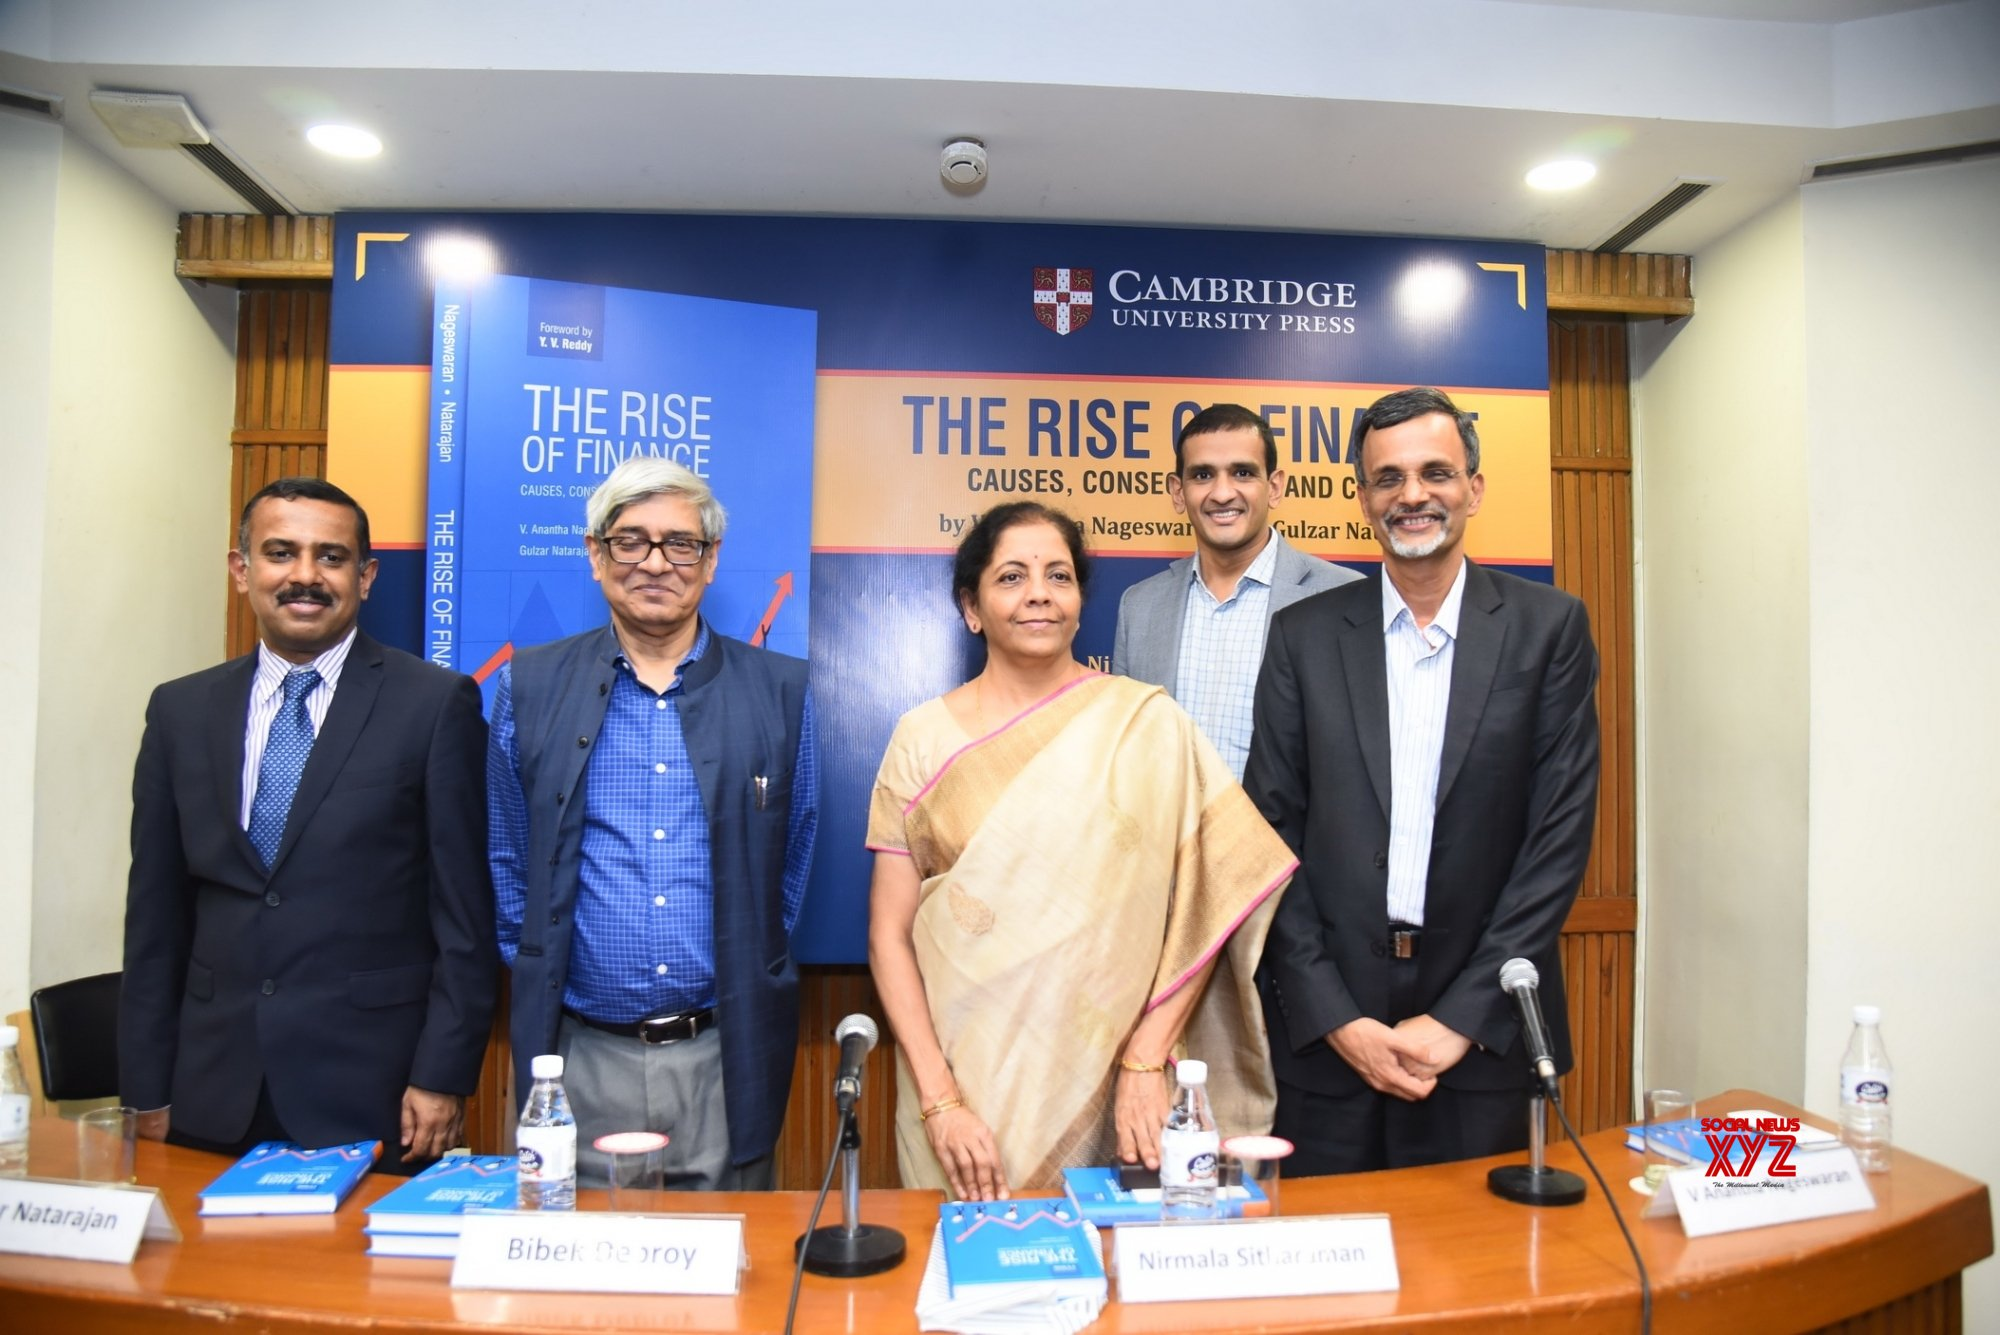 New Delhi: Book launch - 'The Rise of Finance: Causes, Consequences and Cure' #Gallery